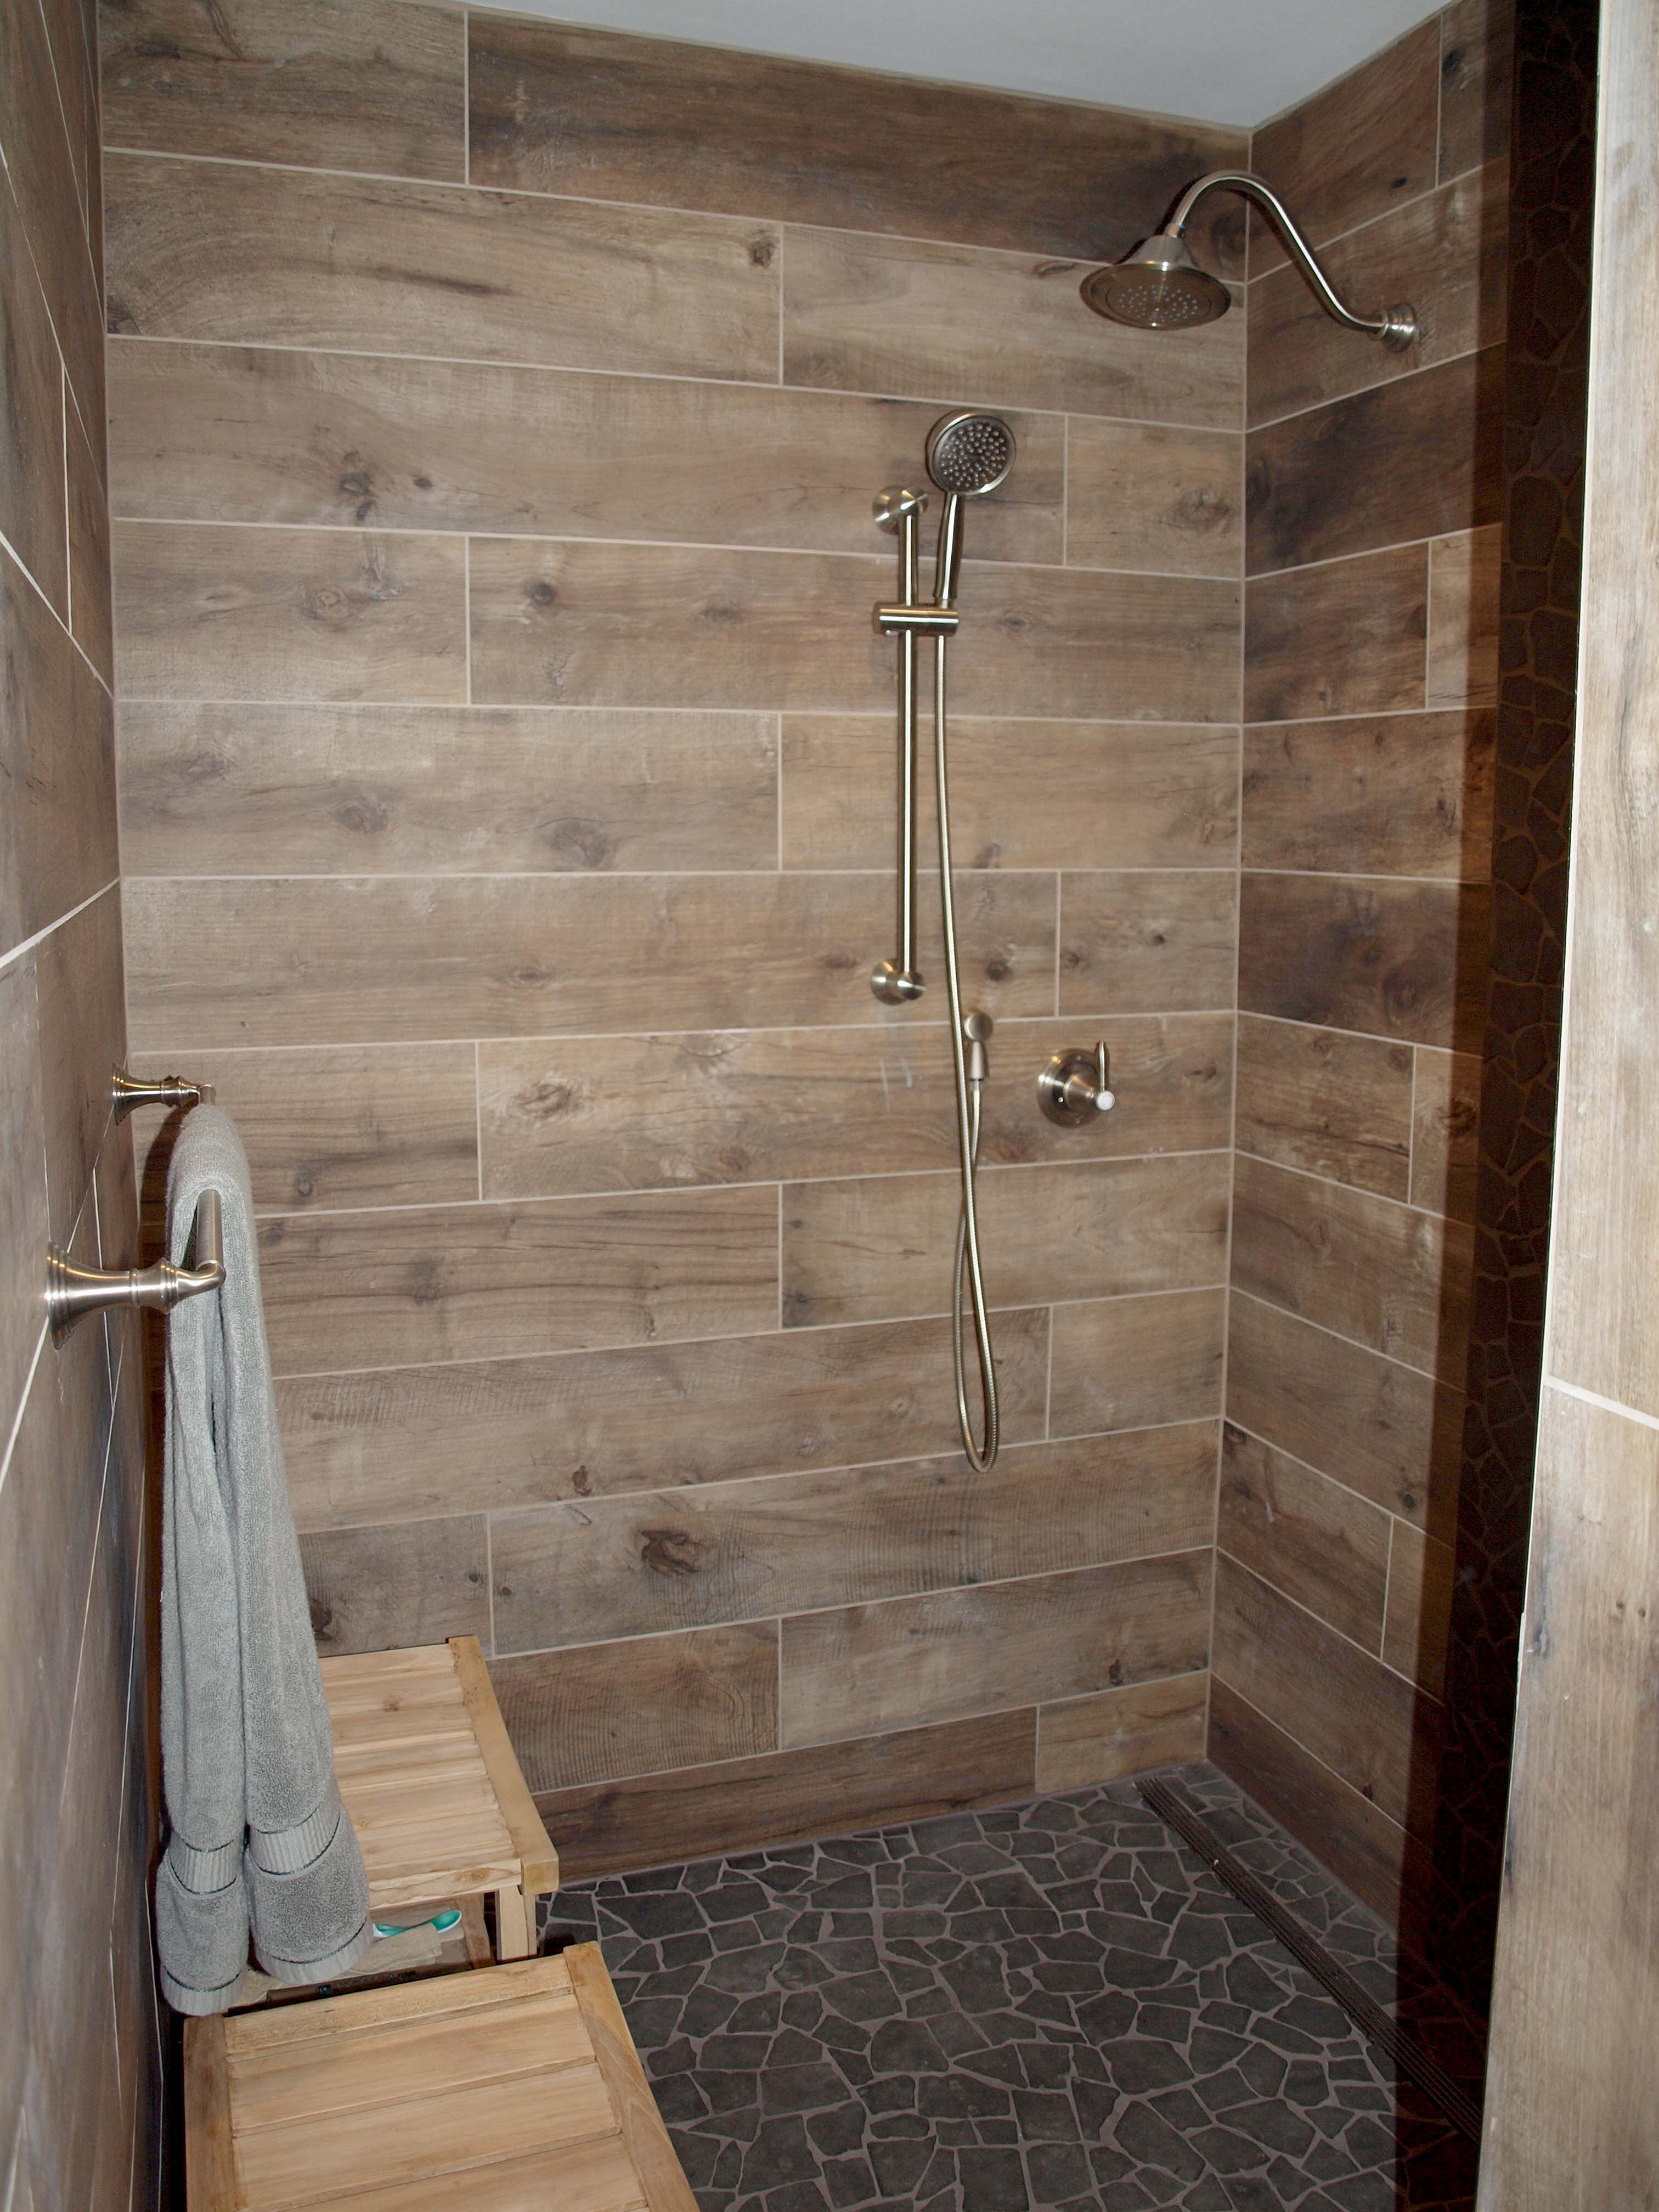 Tile Shower Ideas Commonly Showers Used To Be Simple Area For Worry That Any Exclusive Architectural Featur Simple Bathroom Wood Tile Shower Shower Remodel